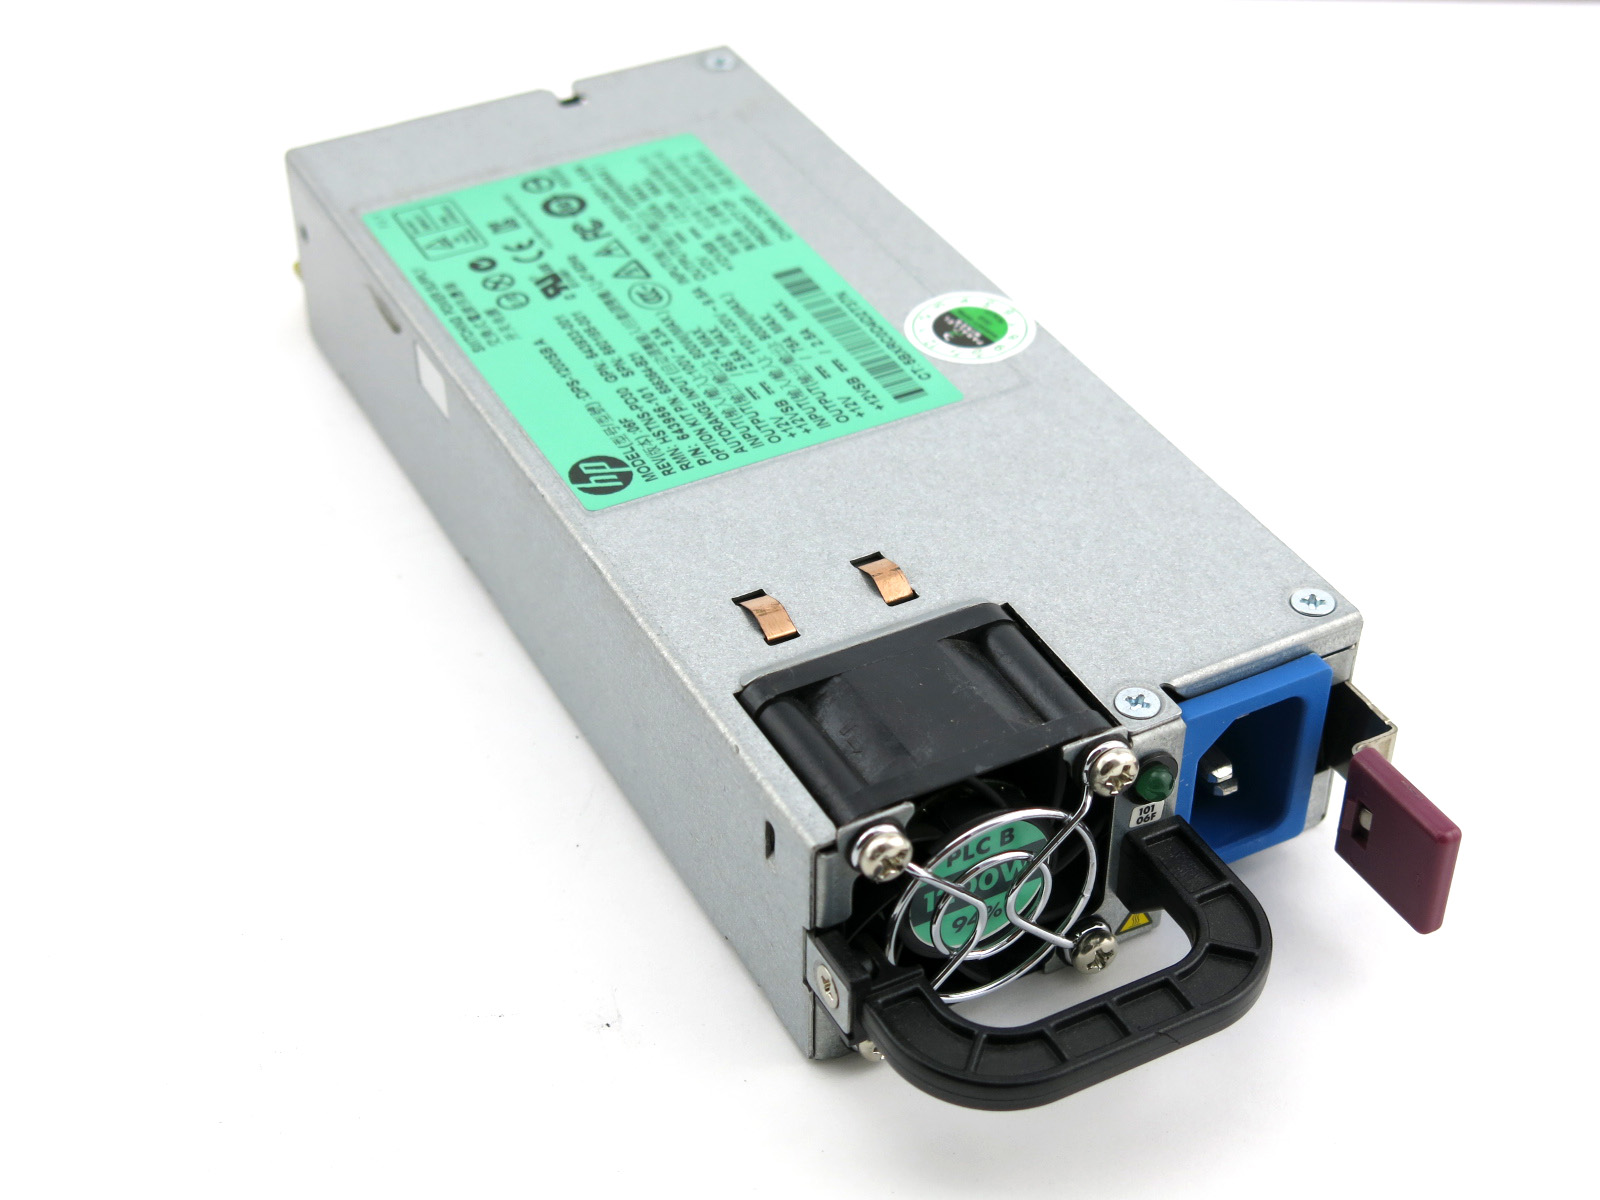 HP Server Power Supply For DL580G7 DPS-1200FB-1 A 579229-001 570451-101 1200W